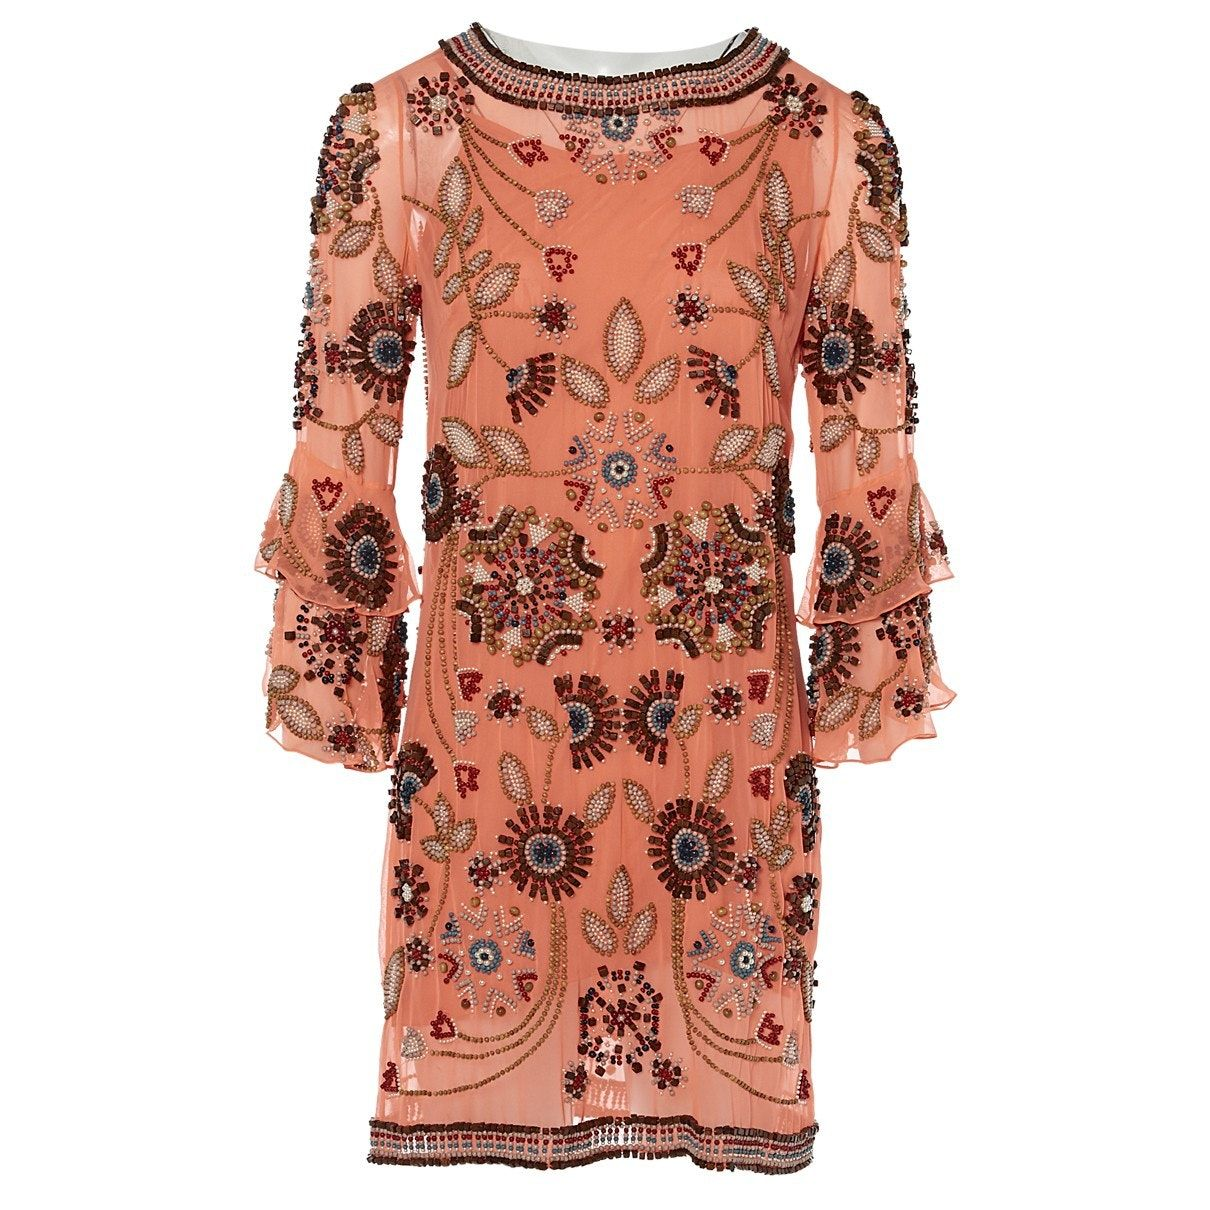 Silk Mid Length Dress Matthew Williamson Orange Size 8 Uk In Silk 4222307 Mid Length Dresses Dresses Clothes Design